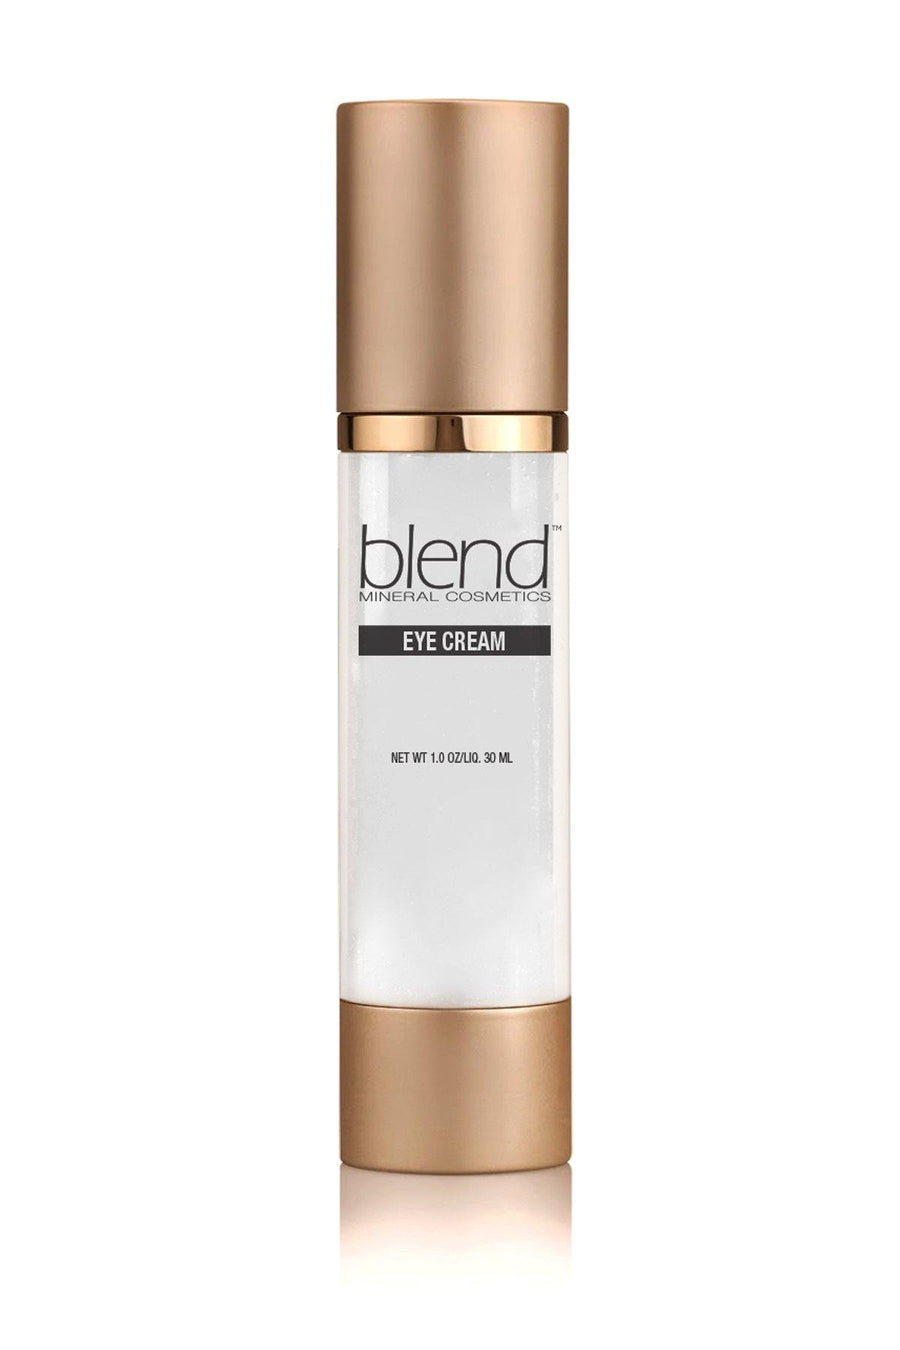 Eye Cream - Blend Mineral Cosmetics